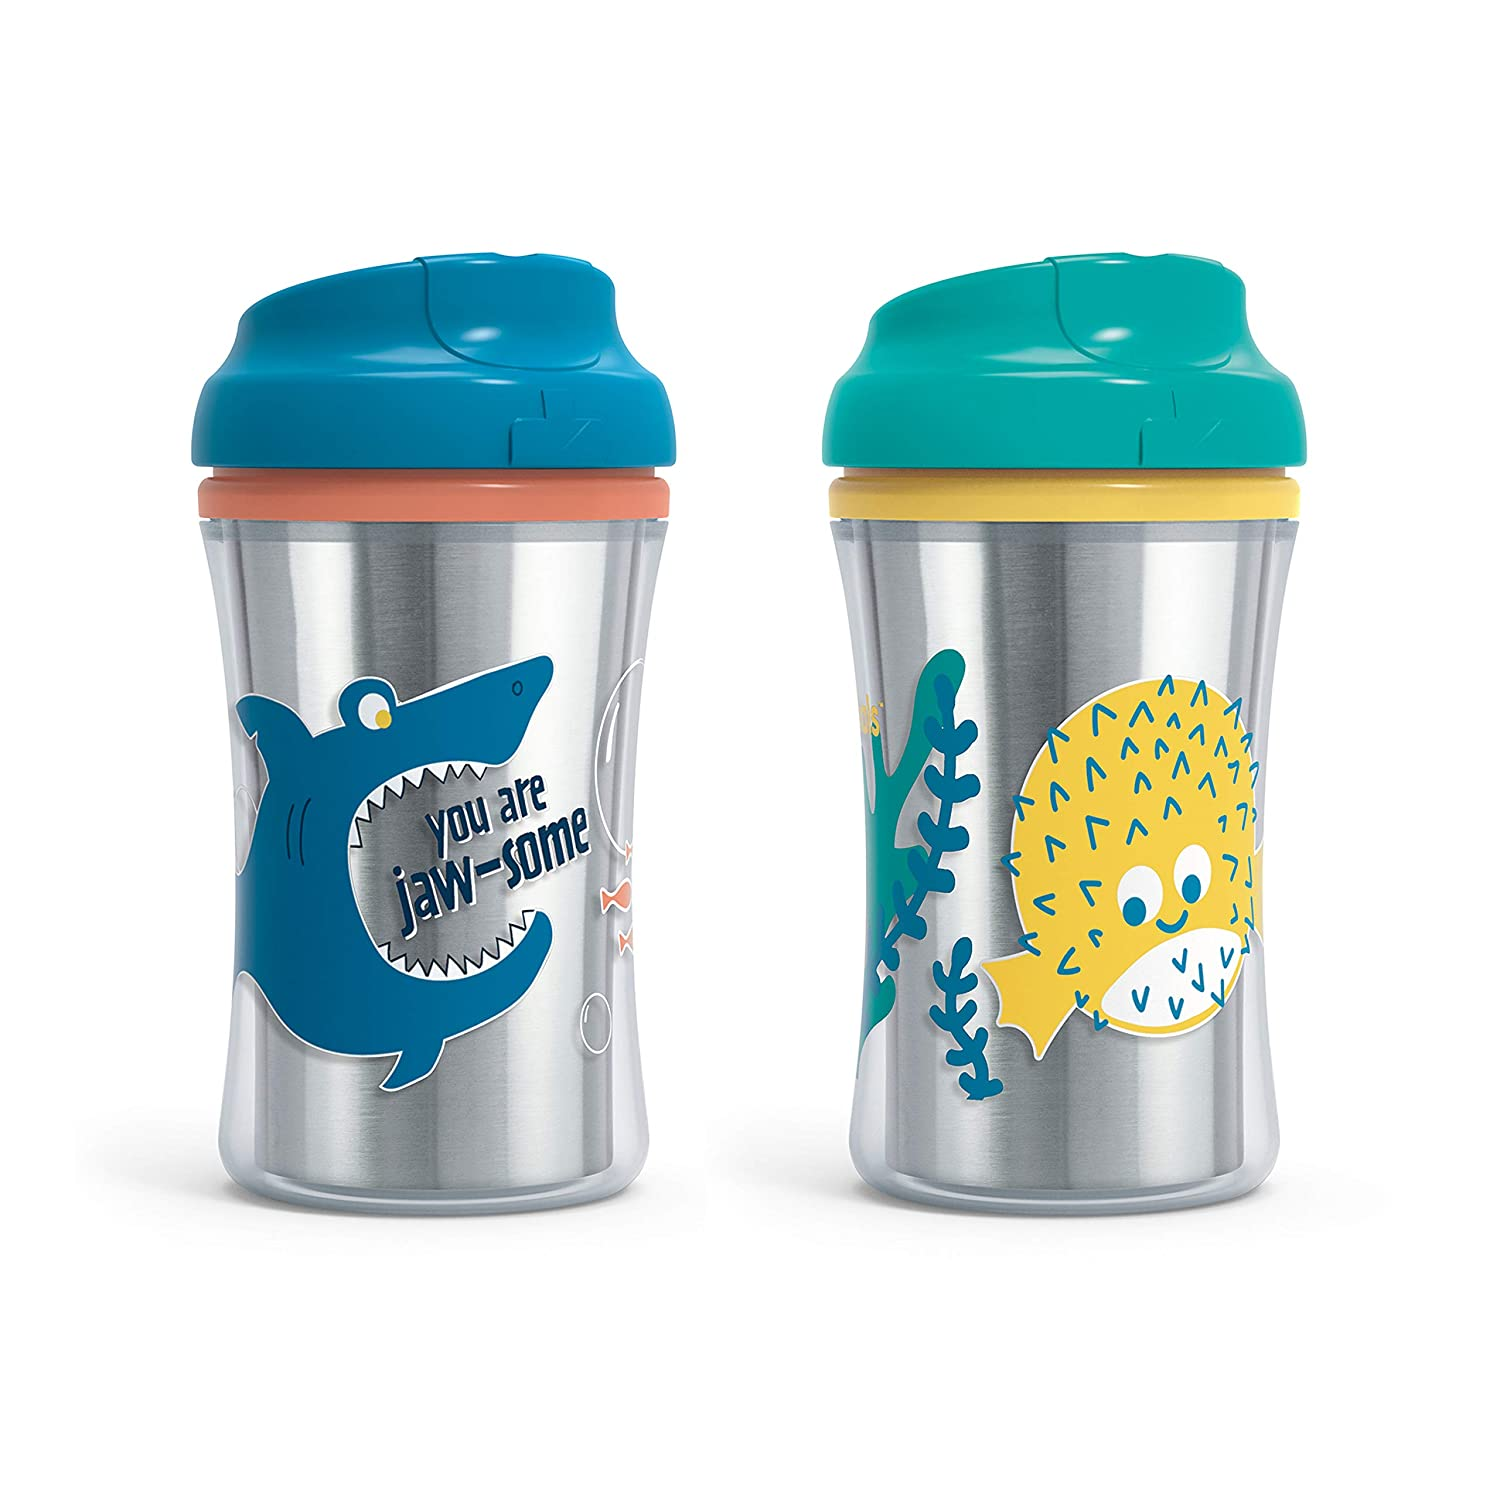 First Essentials 5 ☆ very popular by NUK Fun New Orleans Mall Grips Spout in Assort Cup Sippy Hard